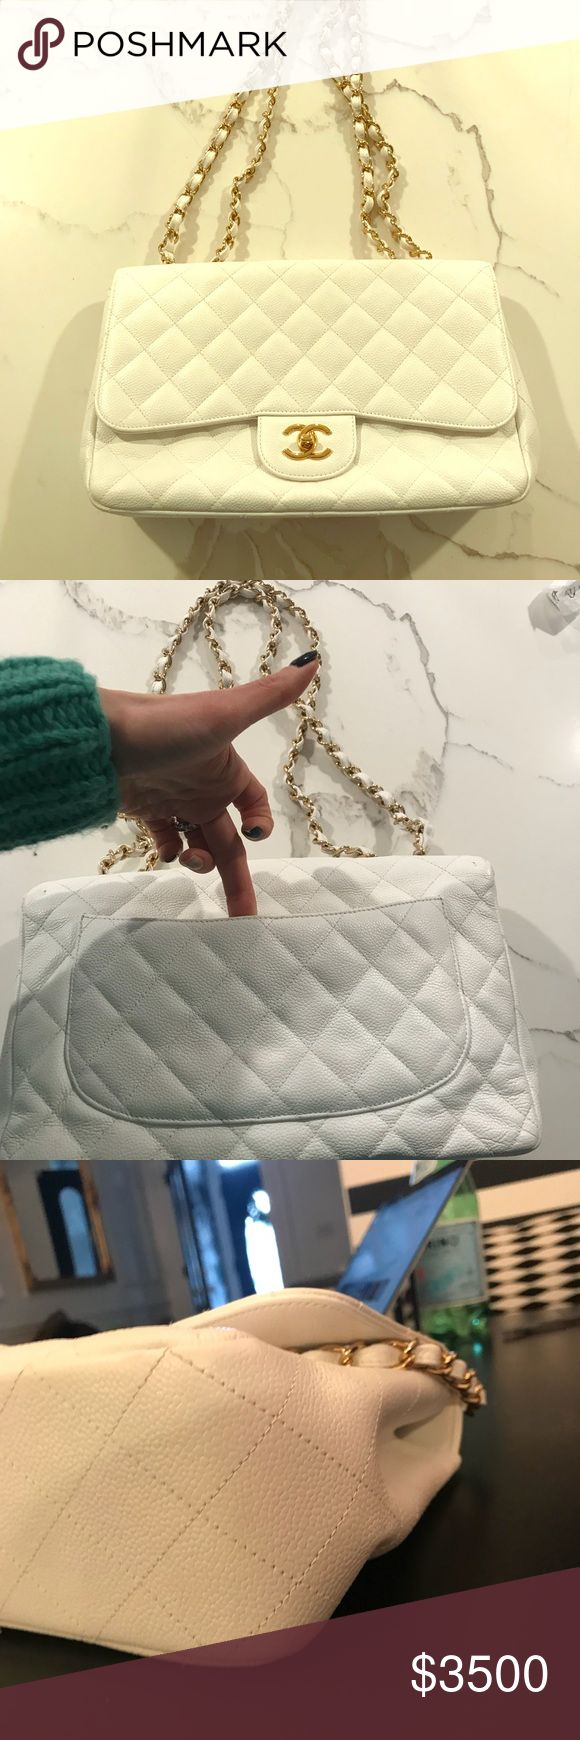 Authentic Chanel Jumbo White Classic Authentic Chanel Jumbo Caviar Leather -white with gold hardware. I used the bag 1 time.  Pristine Condition. Retail $6000 Includes Chanel Dustbag CHANEL Bags